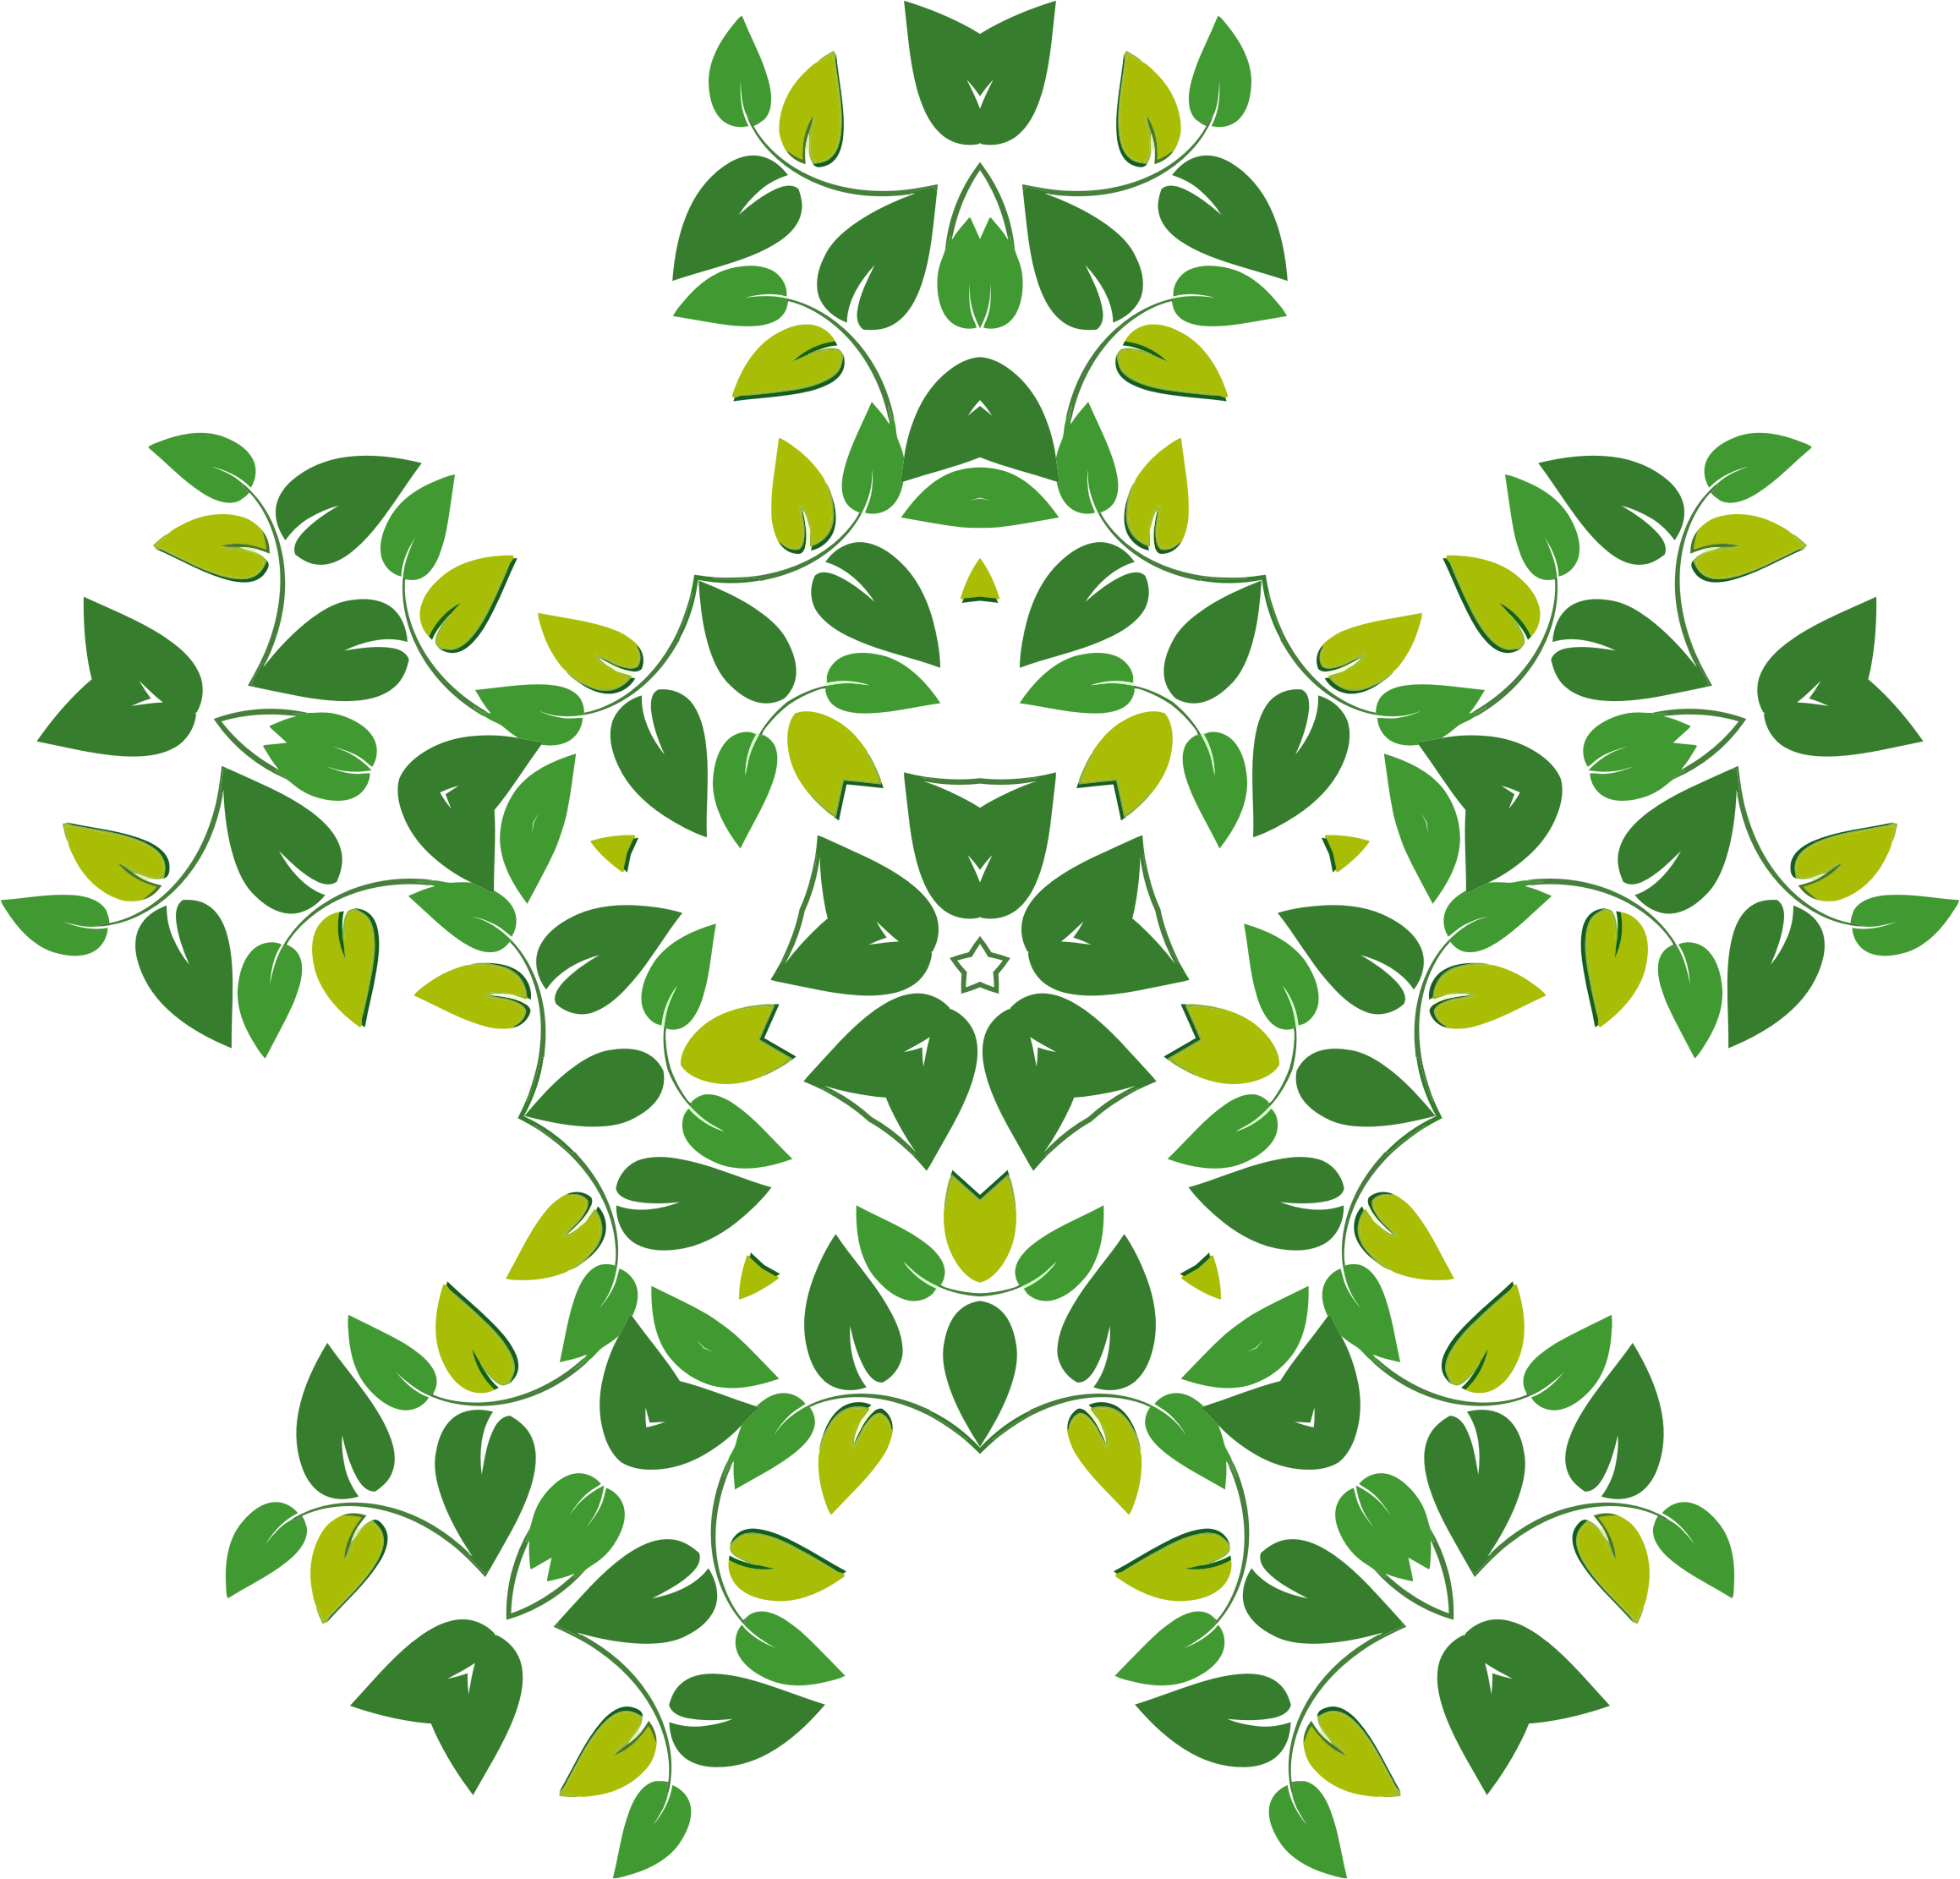 Leafy Design 2 by GDJ